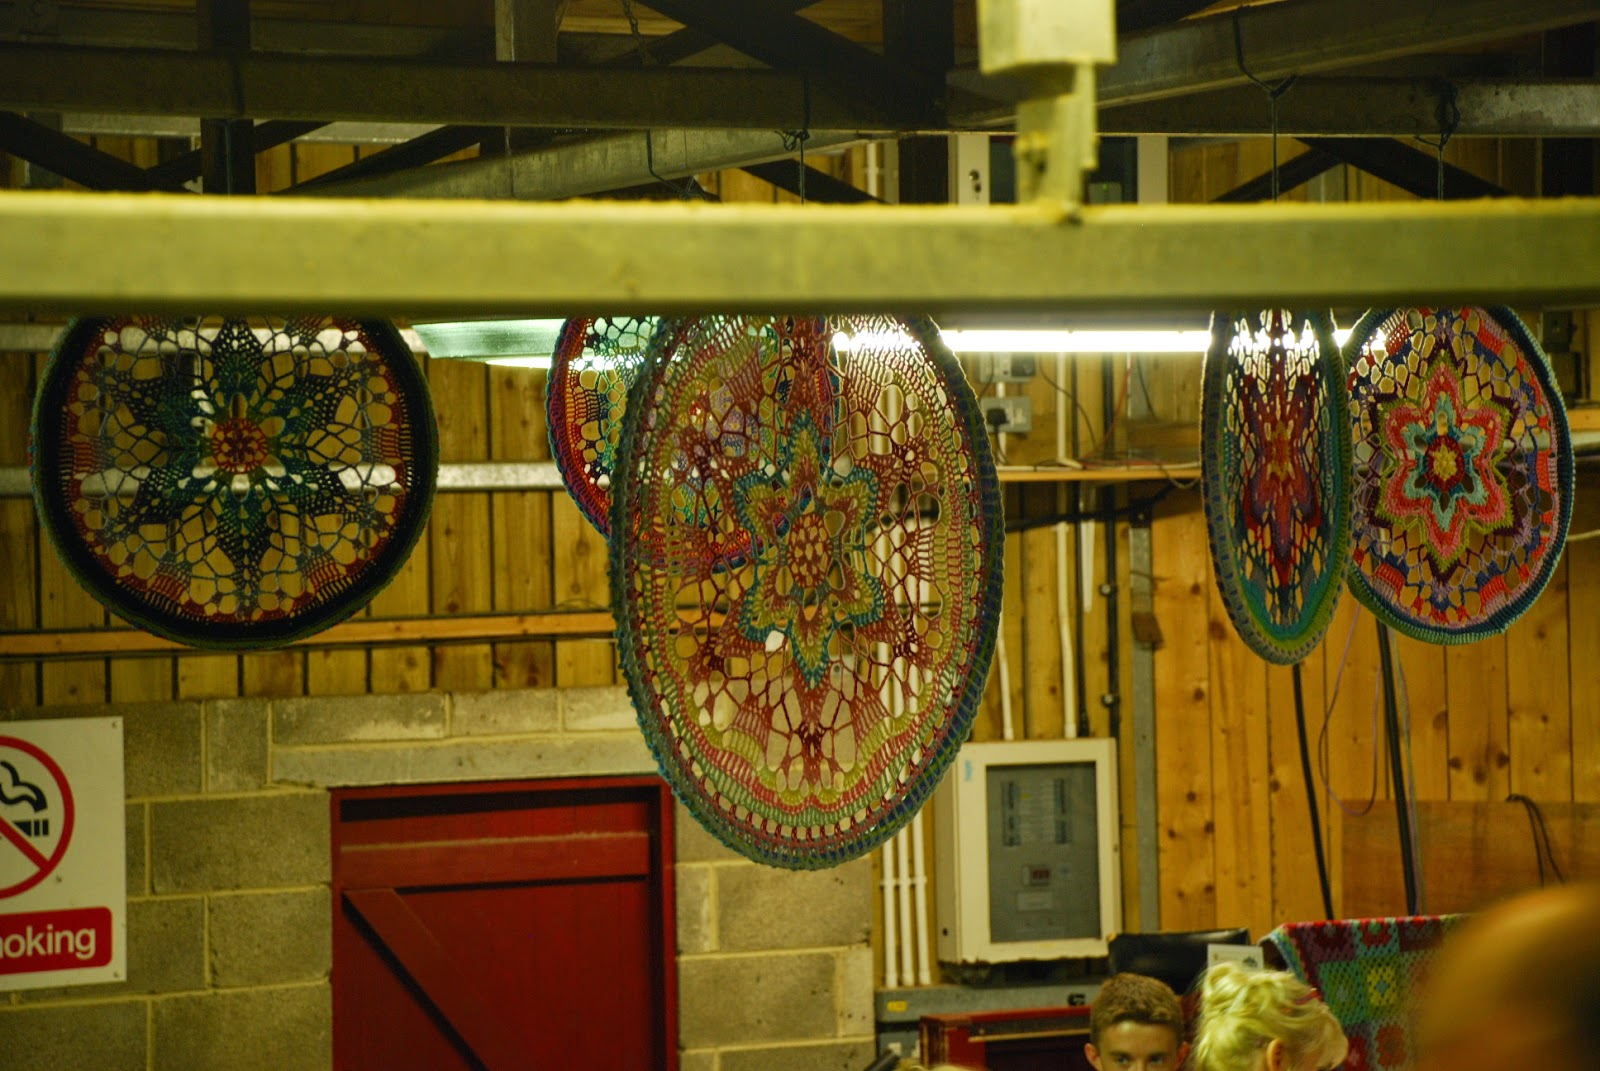 image of large suspended mandalas